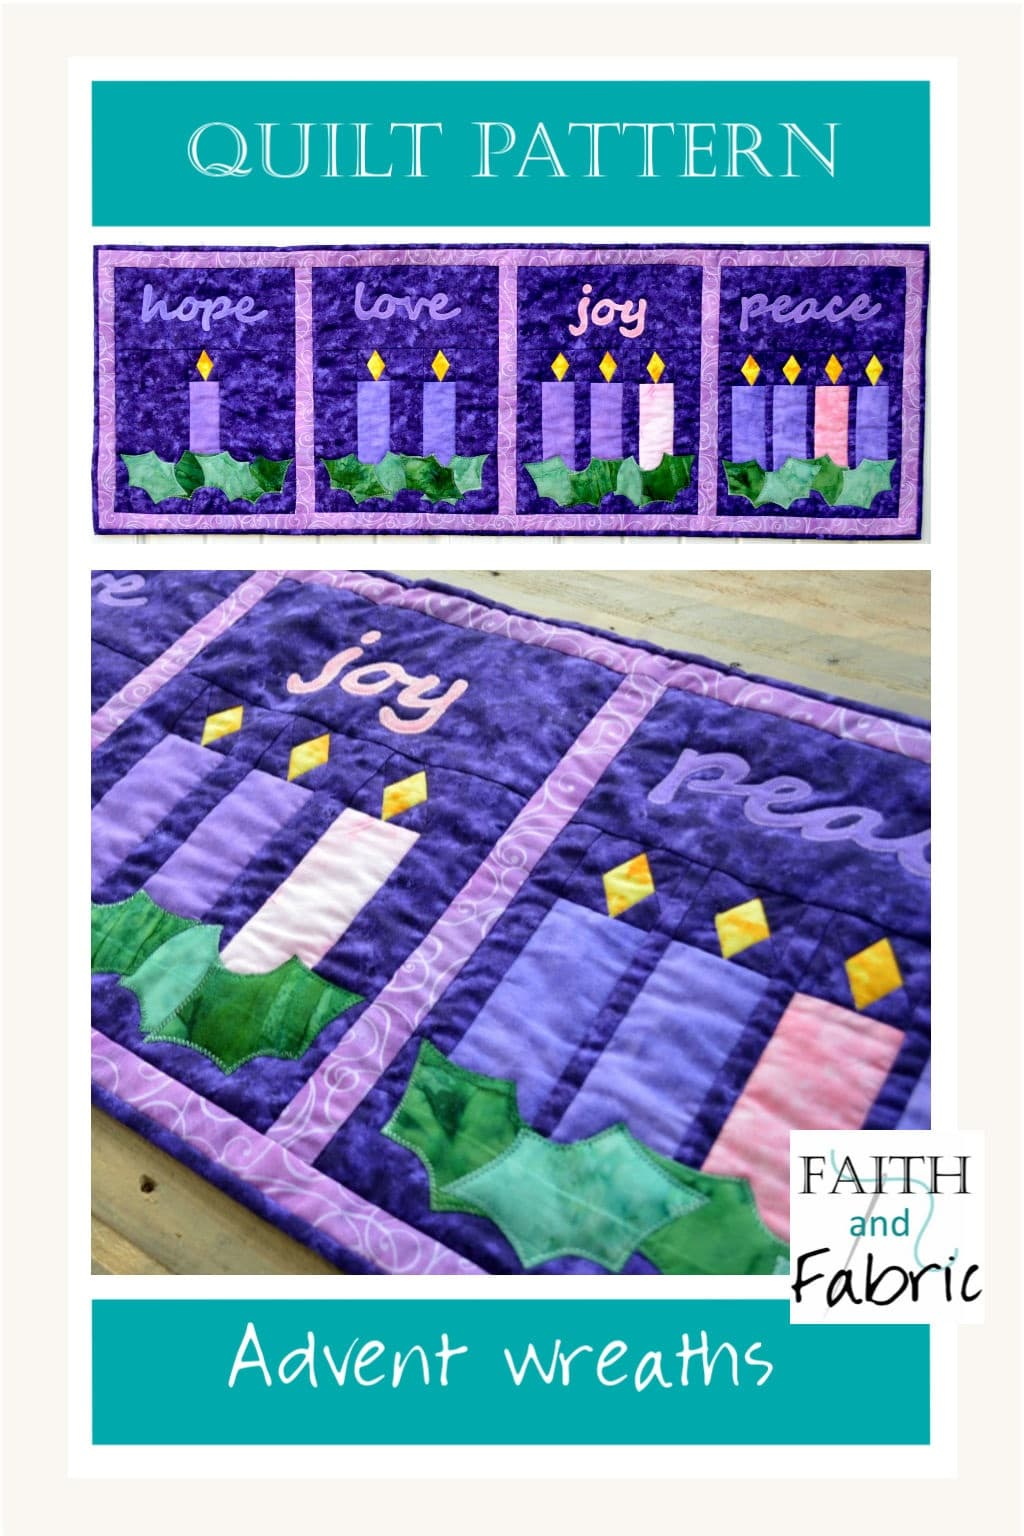 Celebrate the beauty of Advent with this versatile Advent quilt pattern! The four quilt panels can be arranged to be either a table runner, banner, or wall hanging. Each panel in this Christian quilt represents a different week of the Advent season.